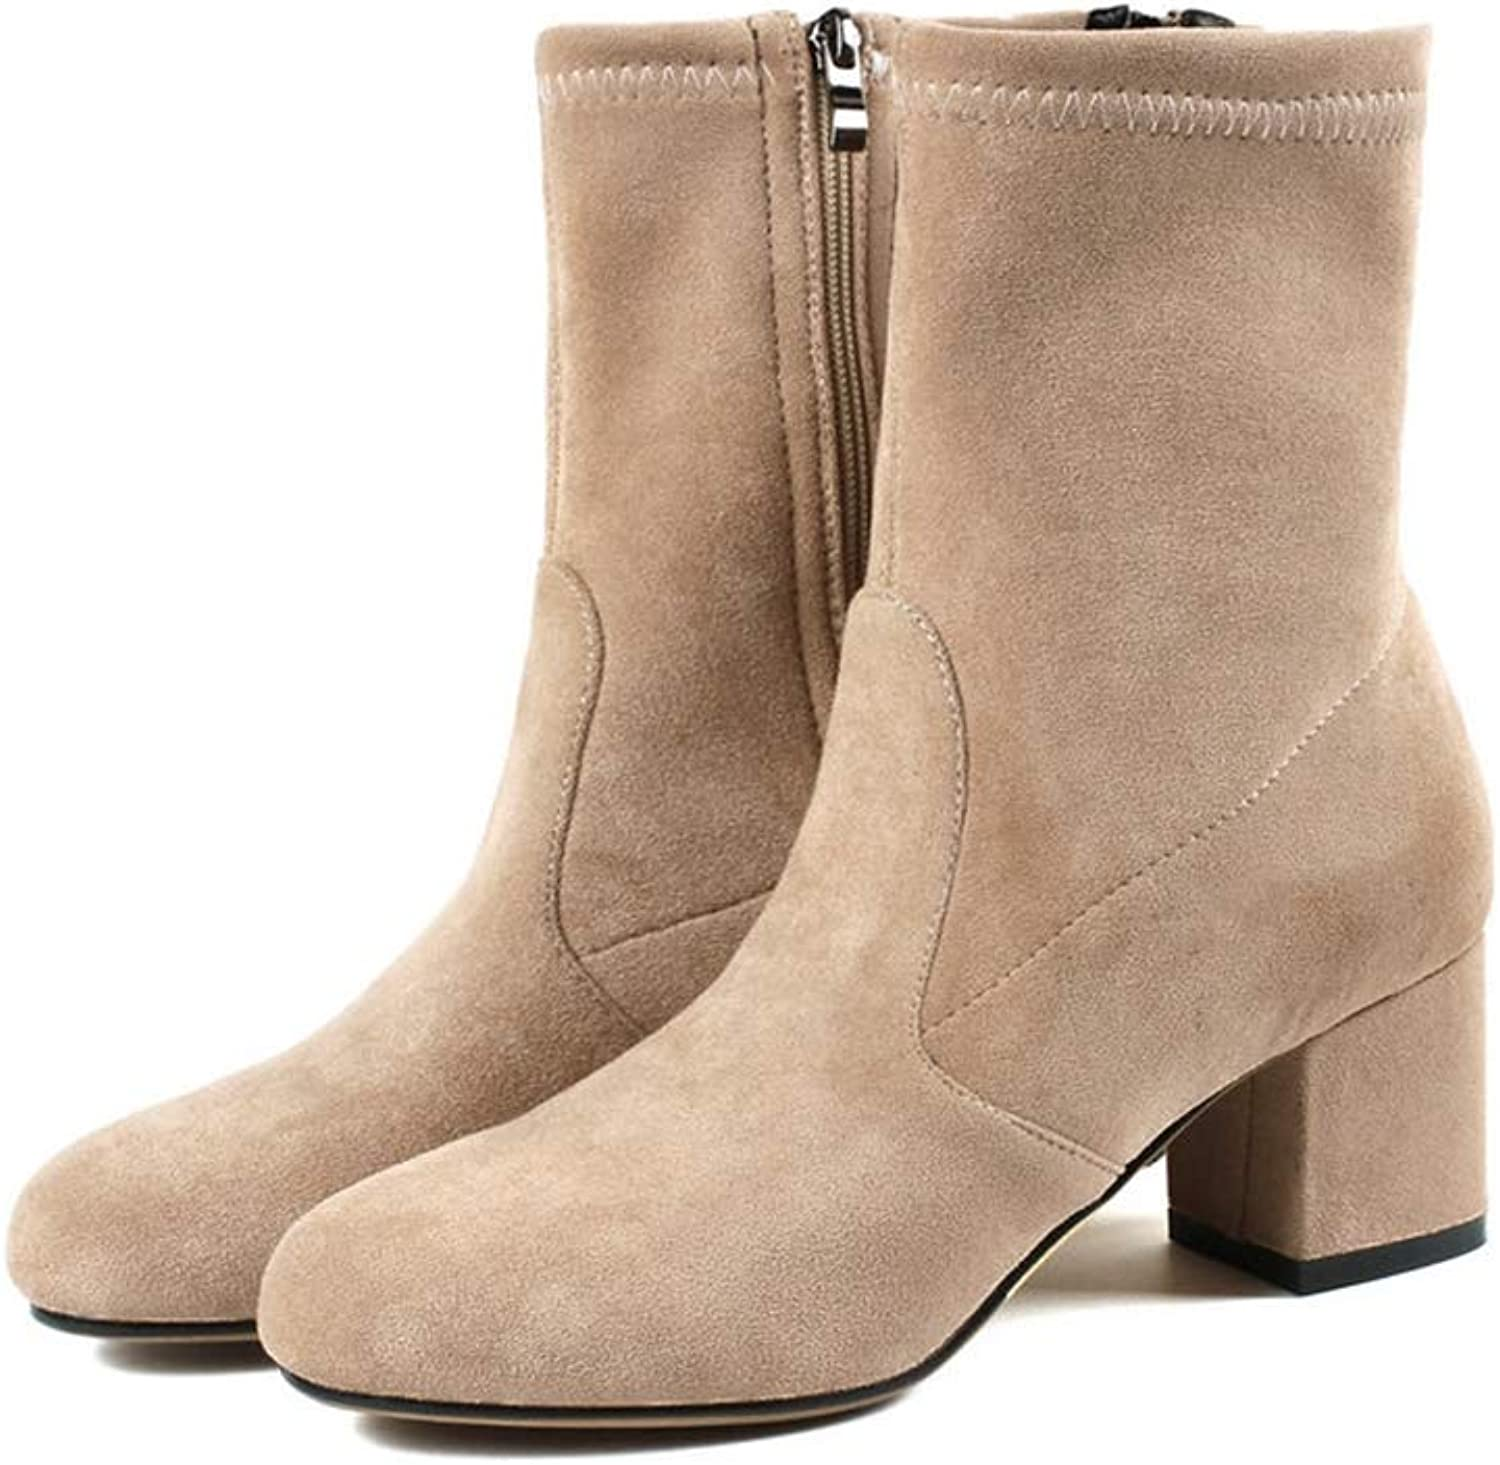 GIY Women Round Toe Ankle Boots Winter Faux Suede Chunky Mid Heels Zip Comfortable Non Slip Short Booties